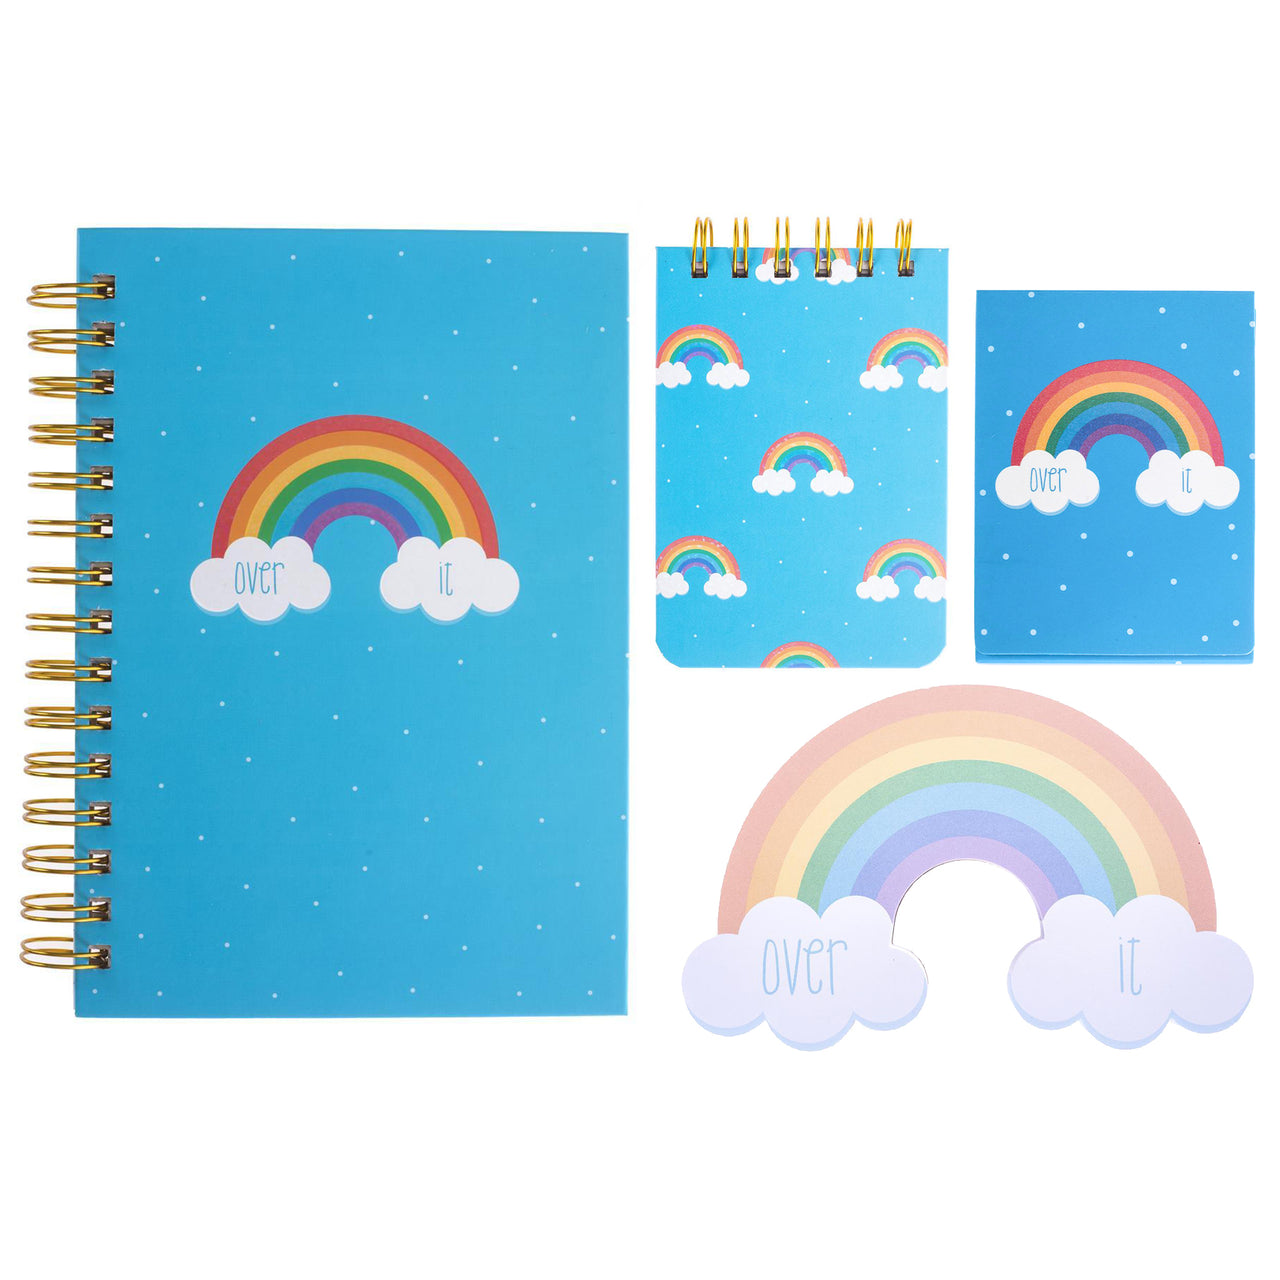 Over the Rainbow Stationery Set  ($35.00 Value)